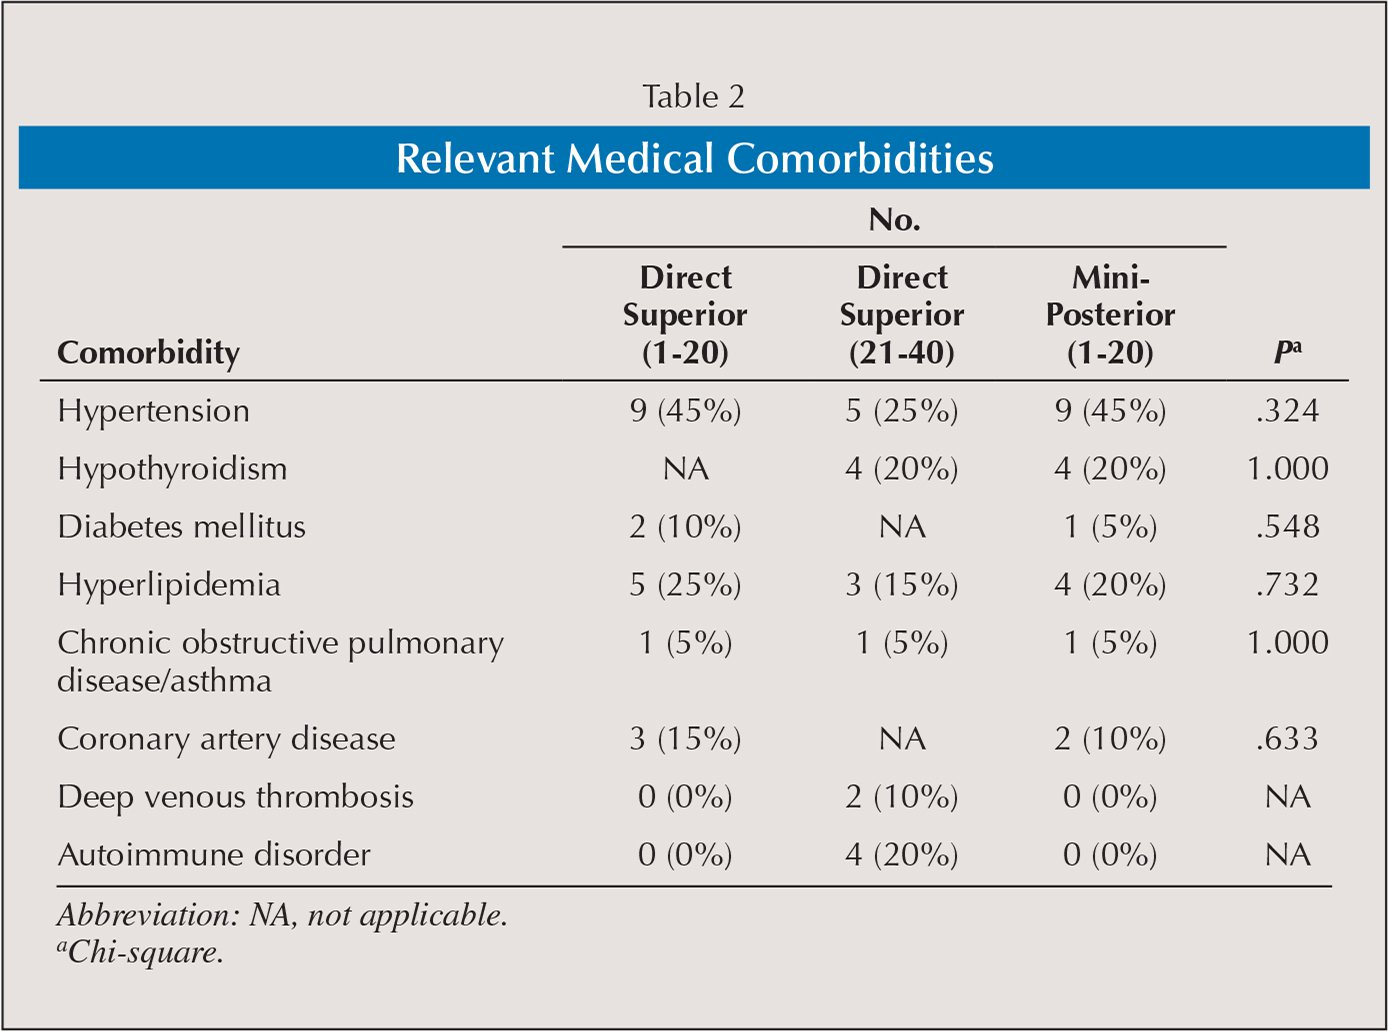 Relevant Medical Comorbidities